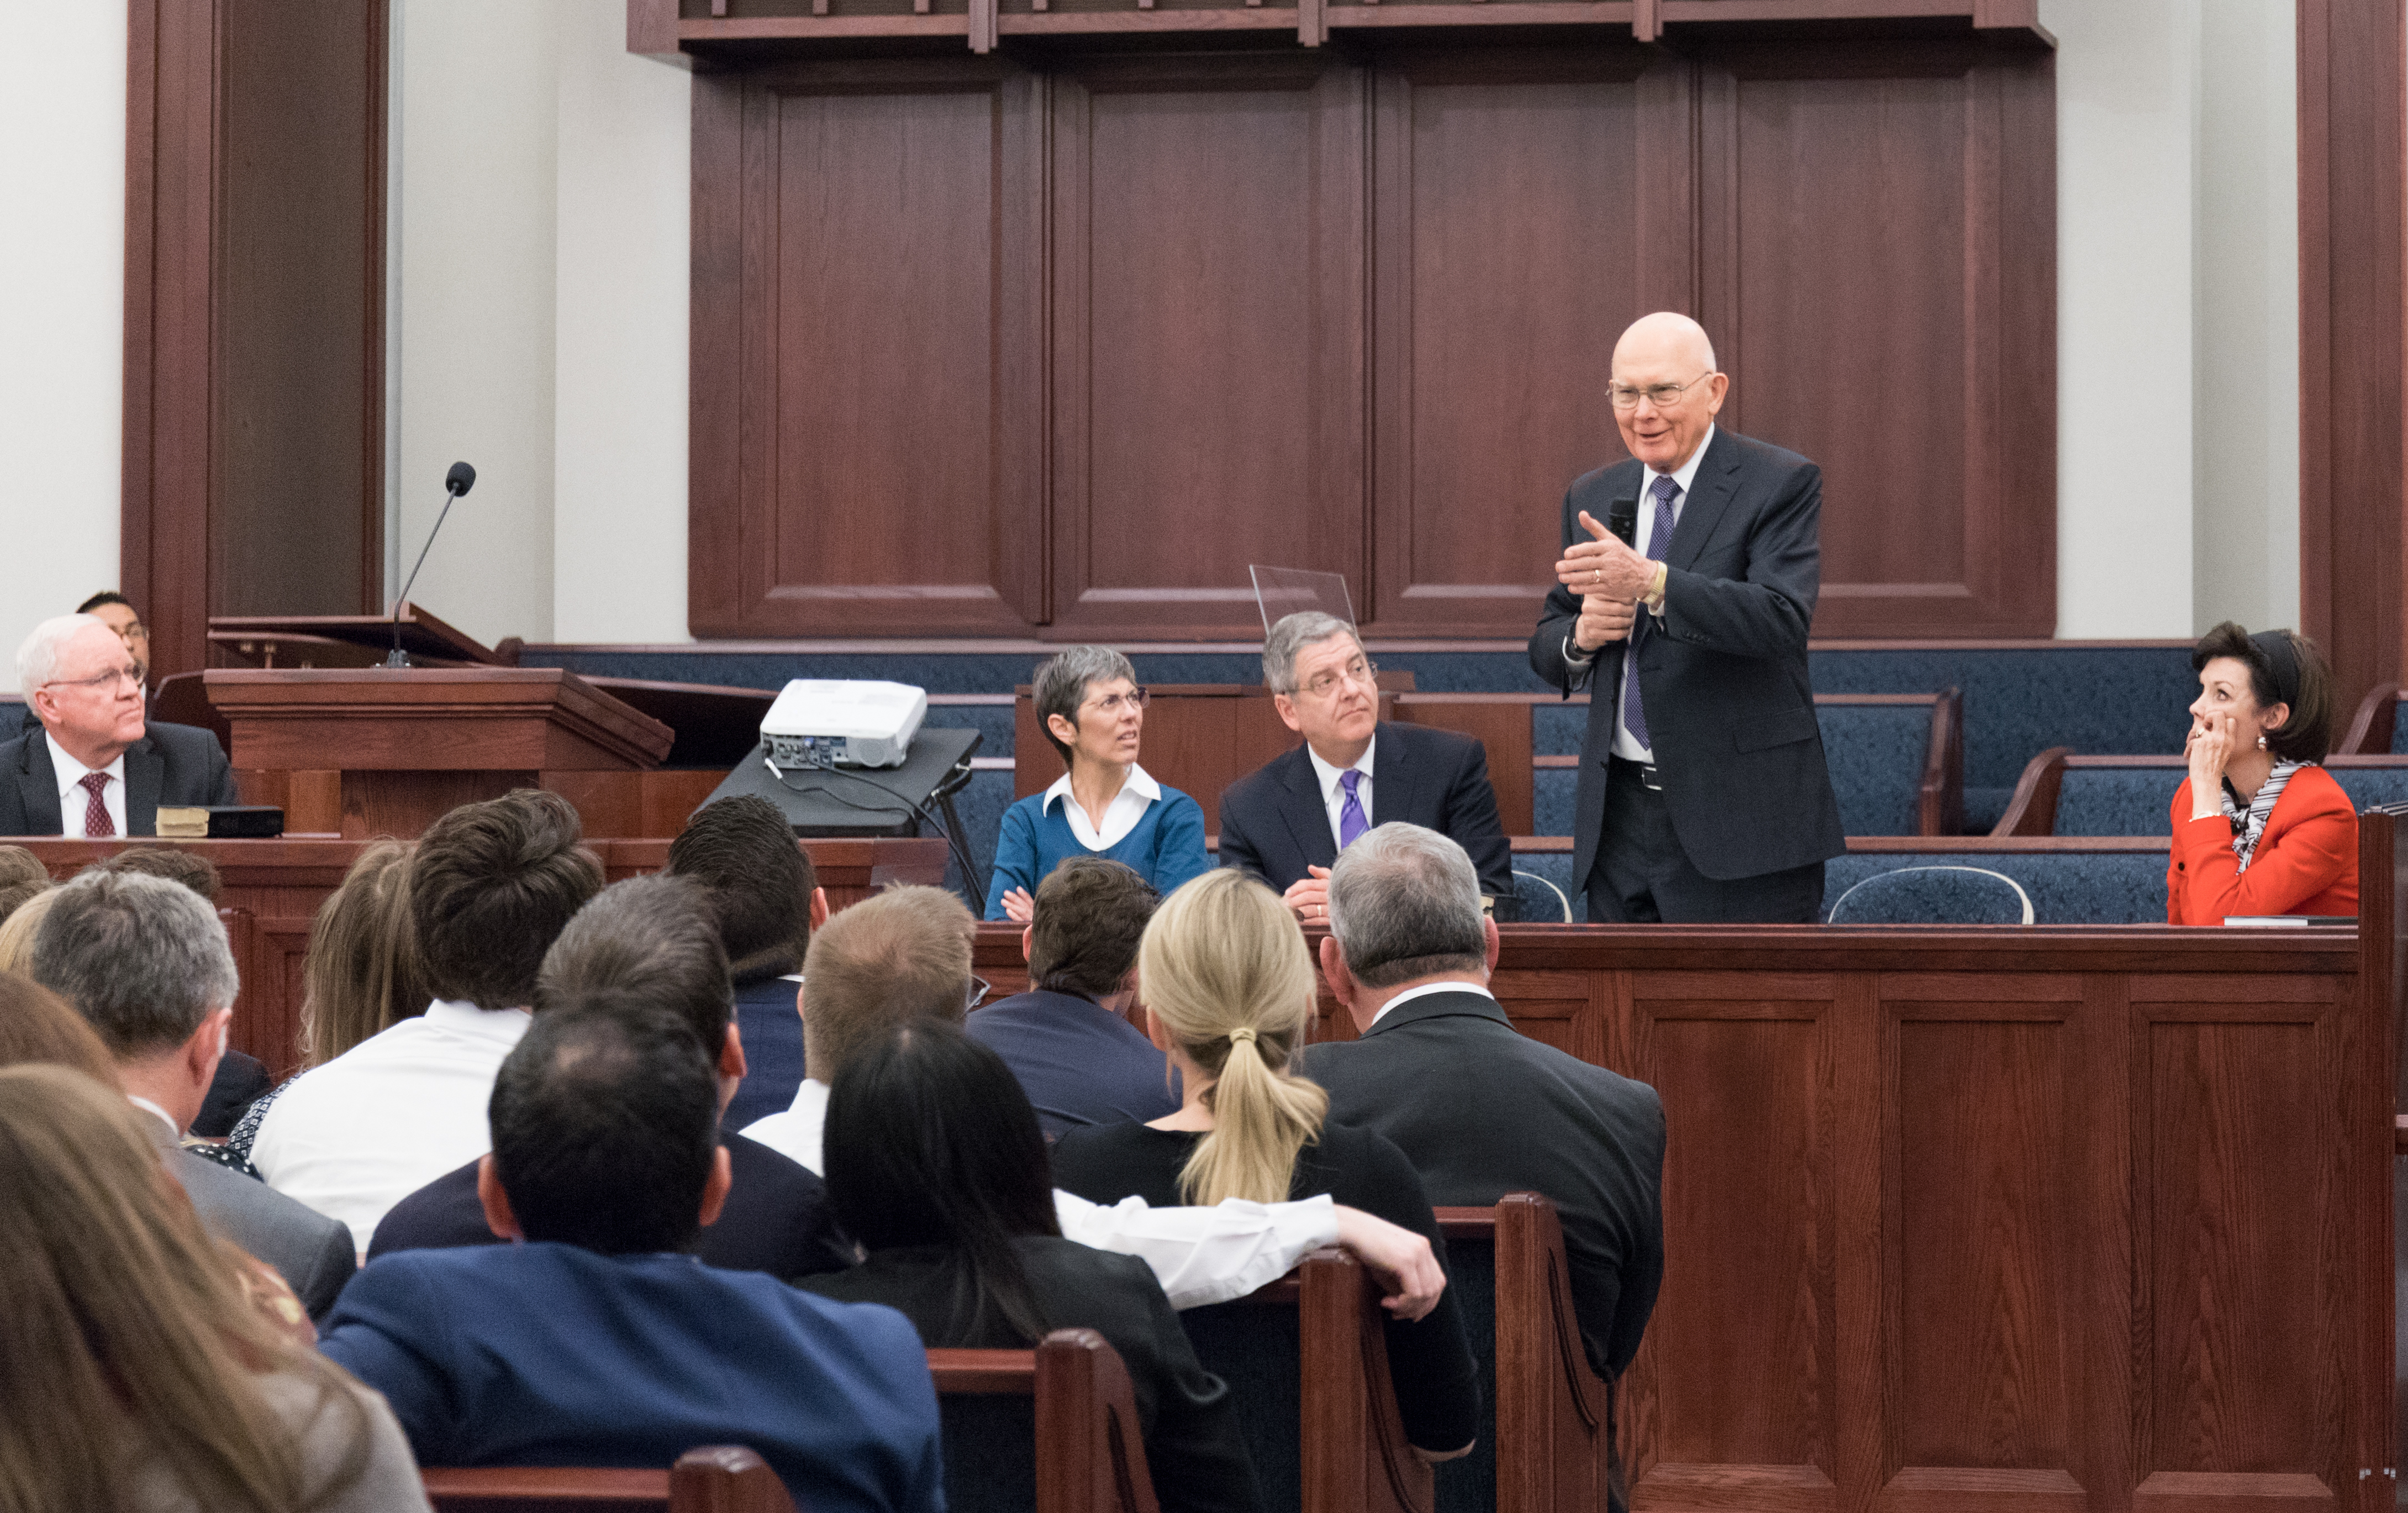 President Dallin H. Oaks answers questions fielded by audience members during Feb. 2, 2019, devotional for young married couples in Chicago.